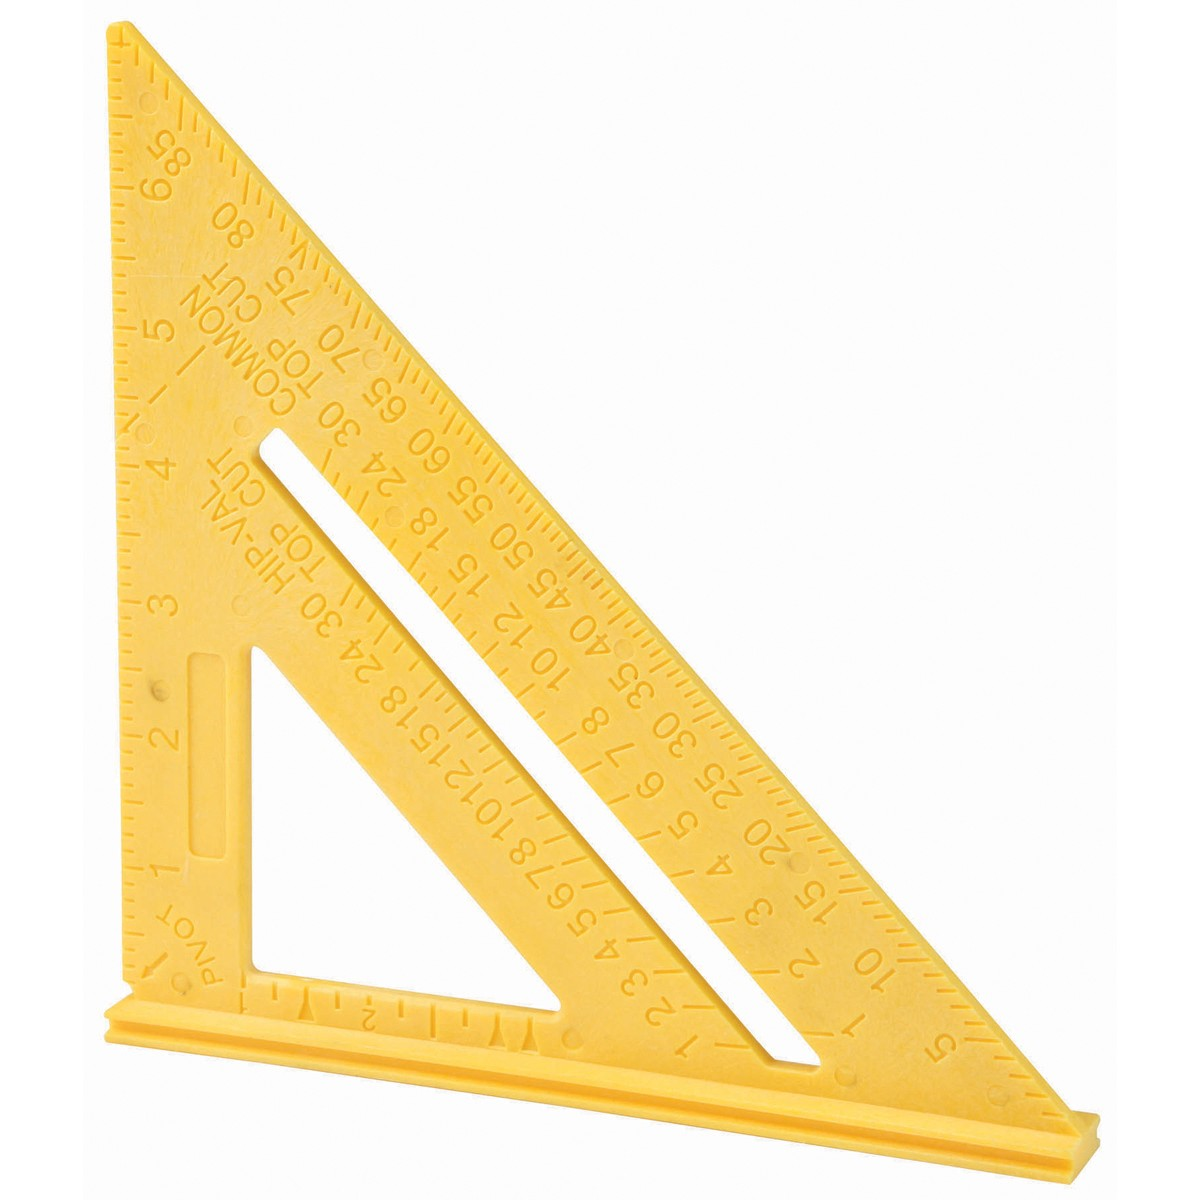 7 in. Rafter Angle Square